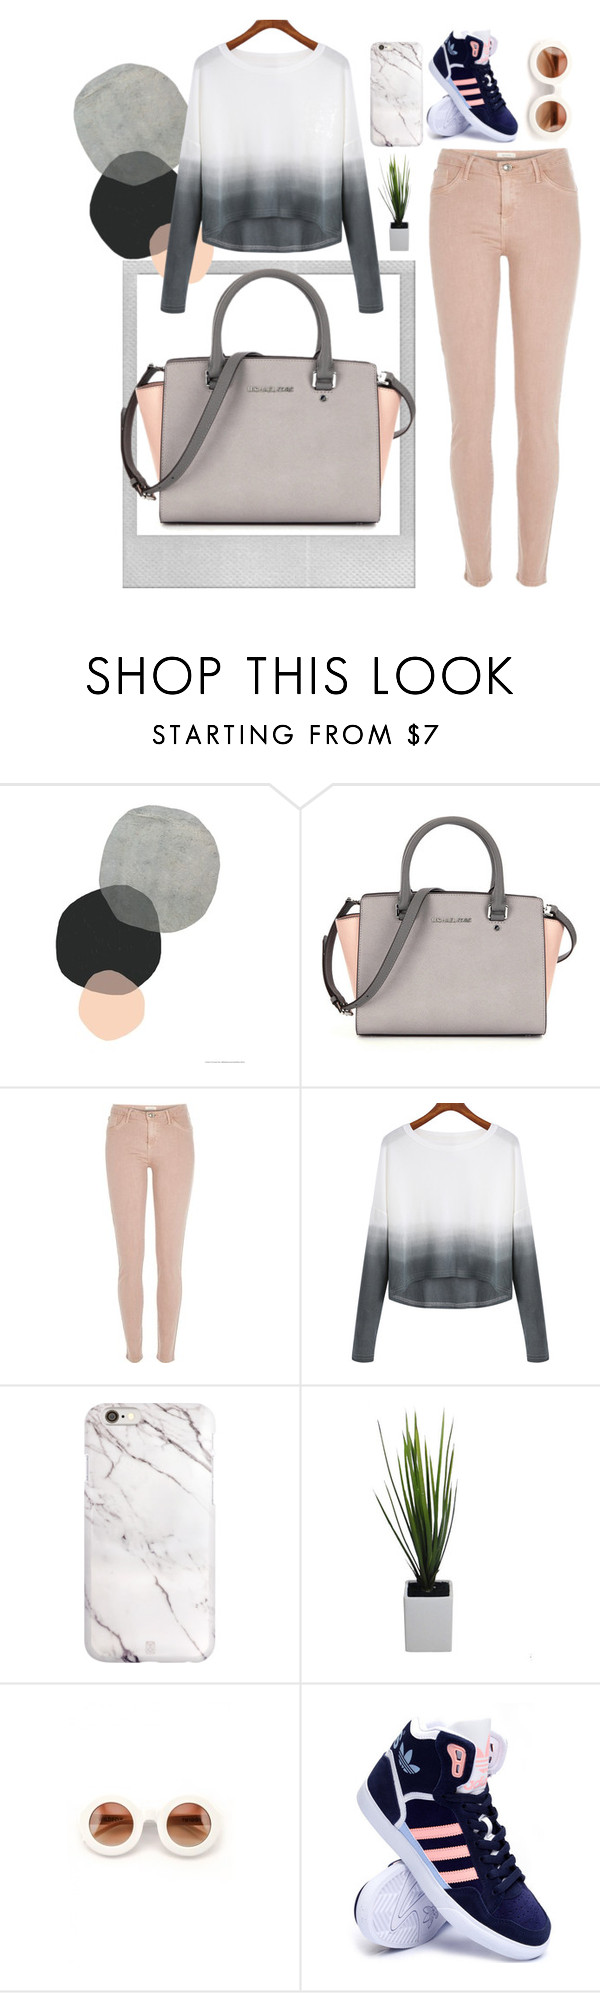 """""""BAG 2016."""" by valeriachindemi ❤ liked on Polyvore featuring Polaroid, River Island, Wildfox, adidas, women's clothing, women's fashion, women, female, woman and misses"""